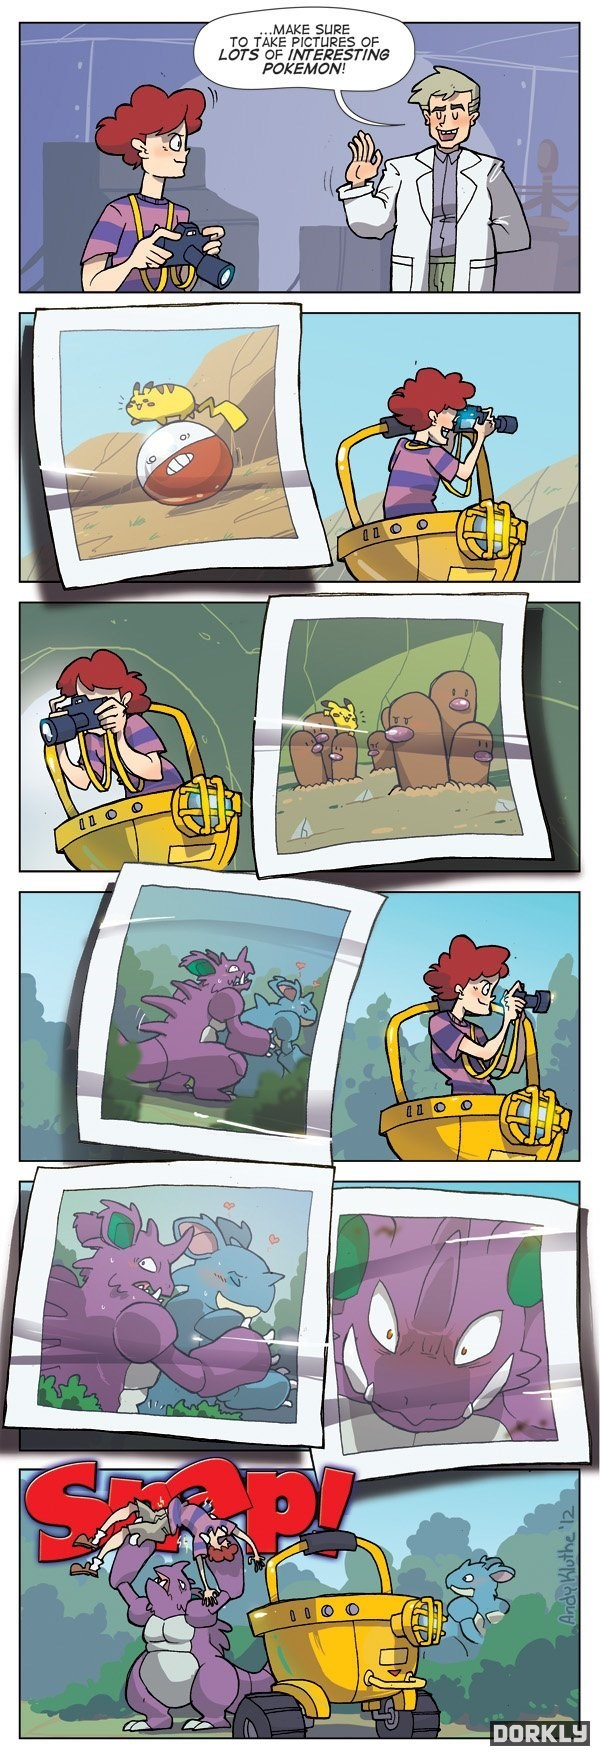 Comics - MAKE SURE TO TAKE PICTURES OF LOTS OF INTERESTING POKEMON! 0 0 O DORKLY Andy Kluthe '12